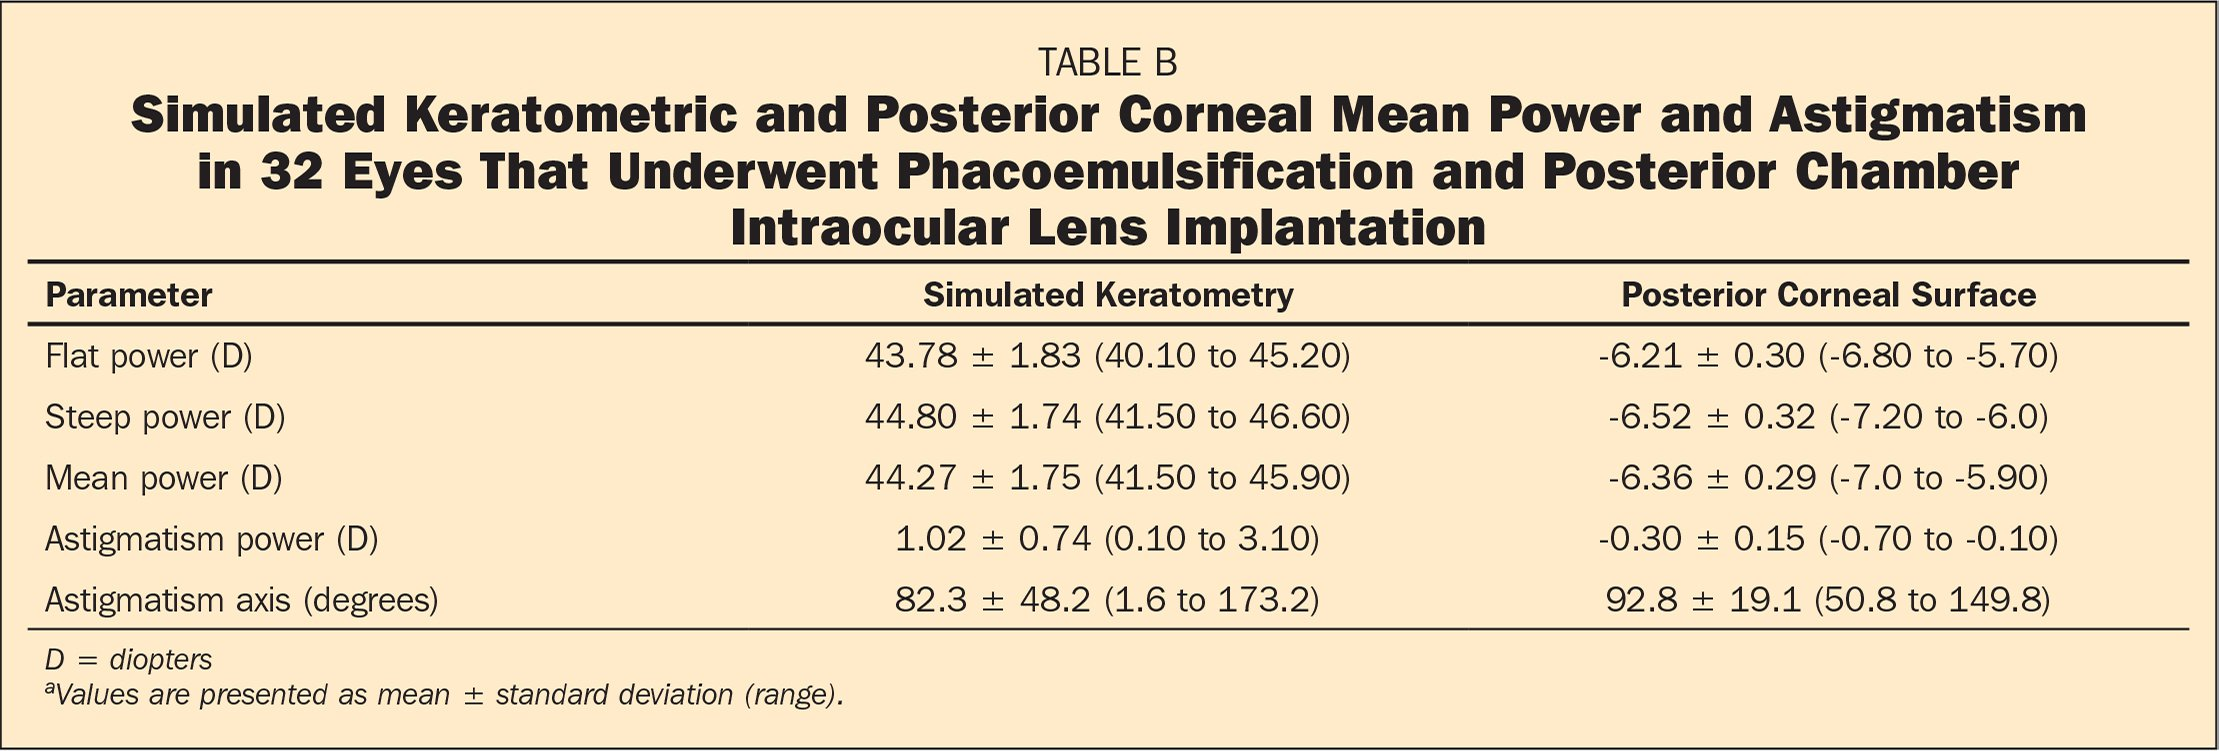 Simulated Keratometric and Posterior Corneal Mean Power and Astigmatism in 32 Eyes That Underwent Phacoemulsification and Posterior Chamber Intraocular Lens Implantation